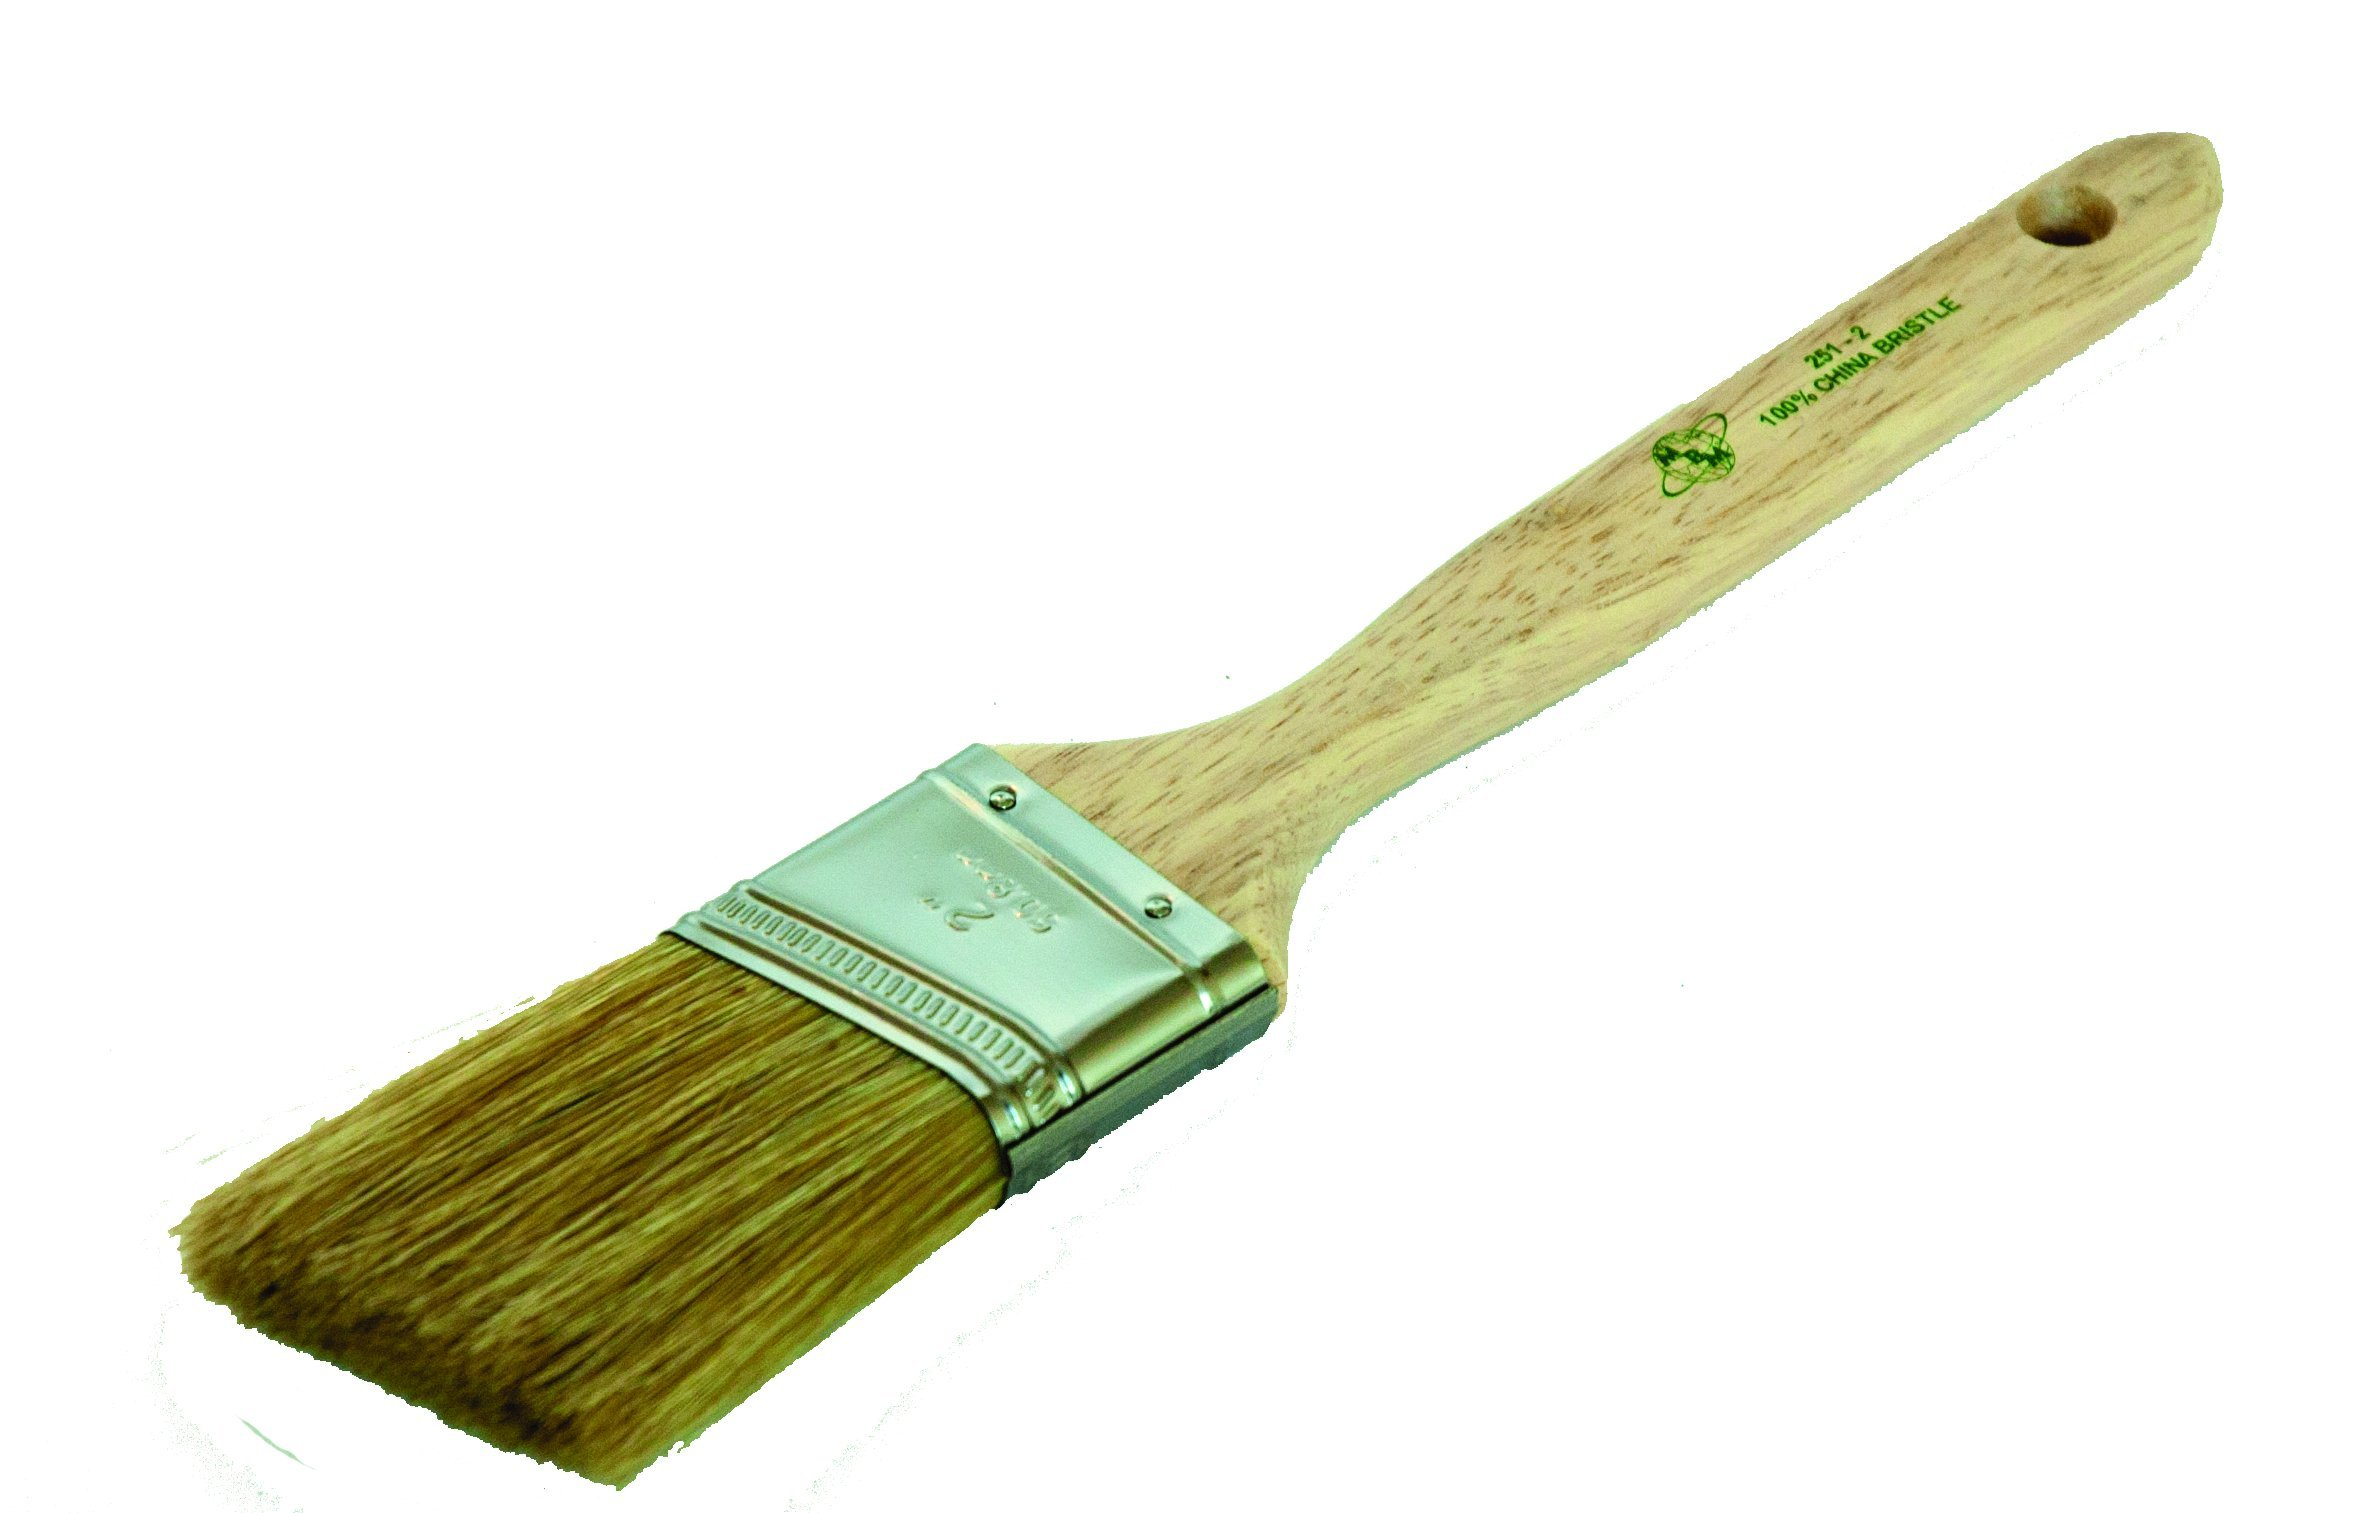 Magnolia Brush 251-3 Angle Sash Paint Brush with Stainless Steel Ferrule, 3'' Bristle Width (Case of 12)